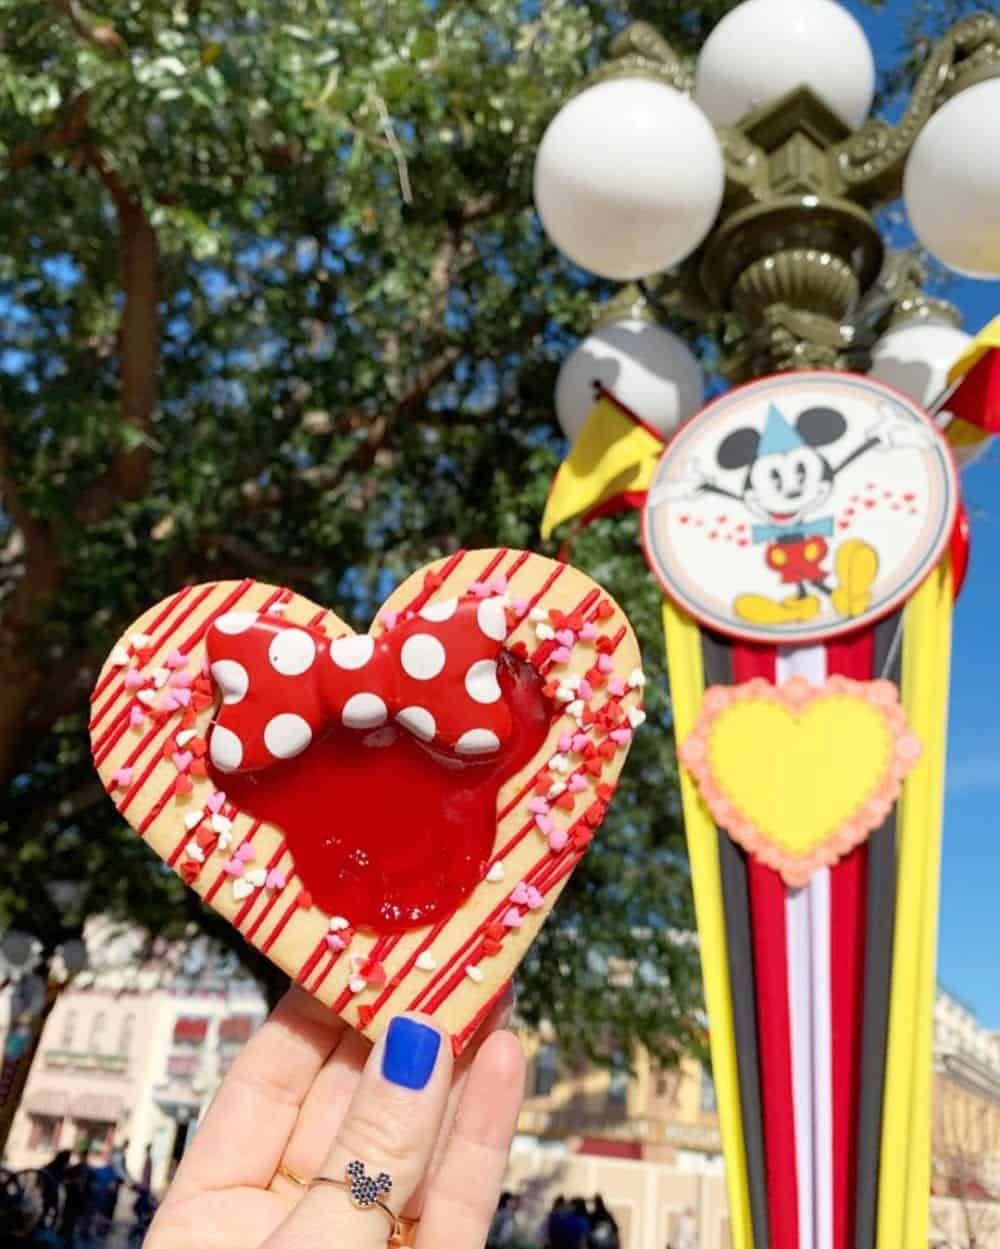 Best Disneyland Food For Valentines Month 2019 - Picky Palate